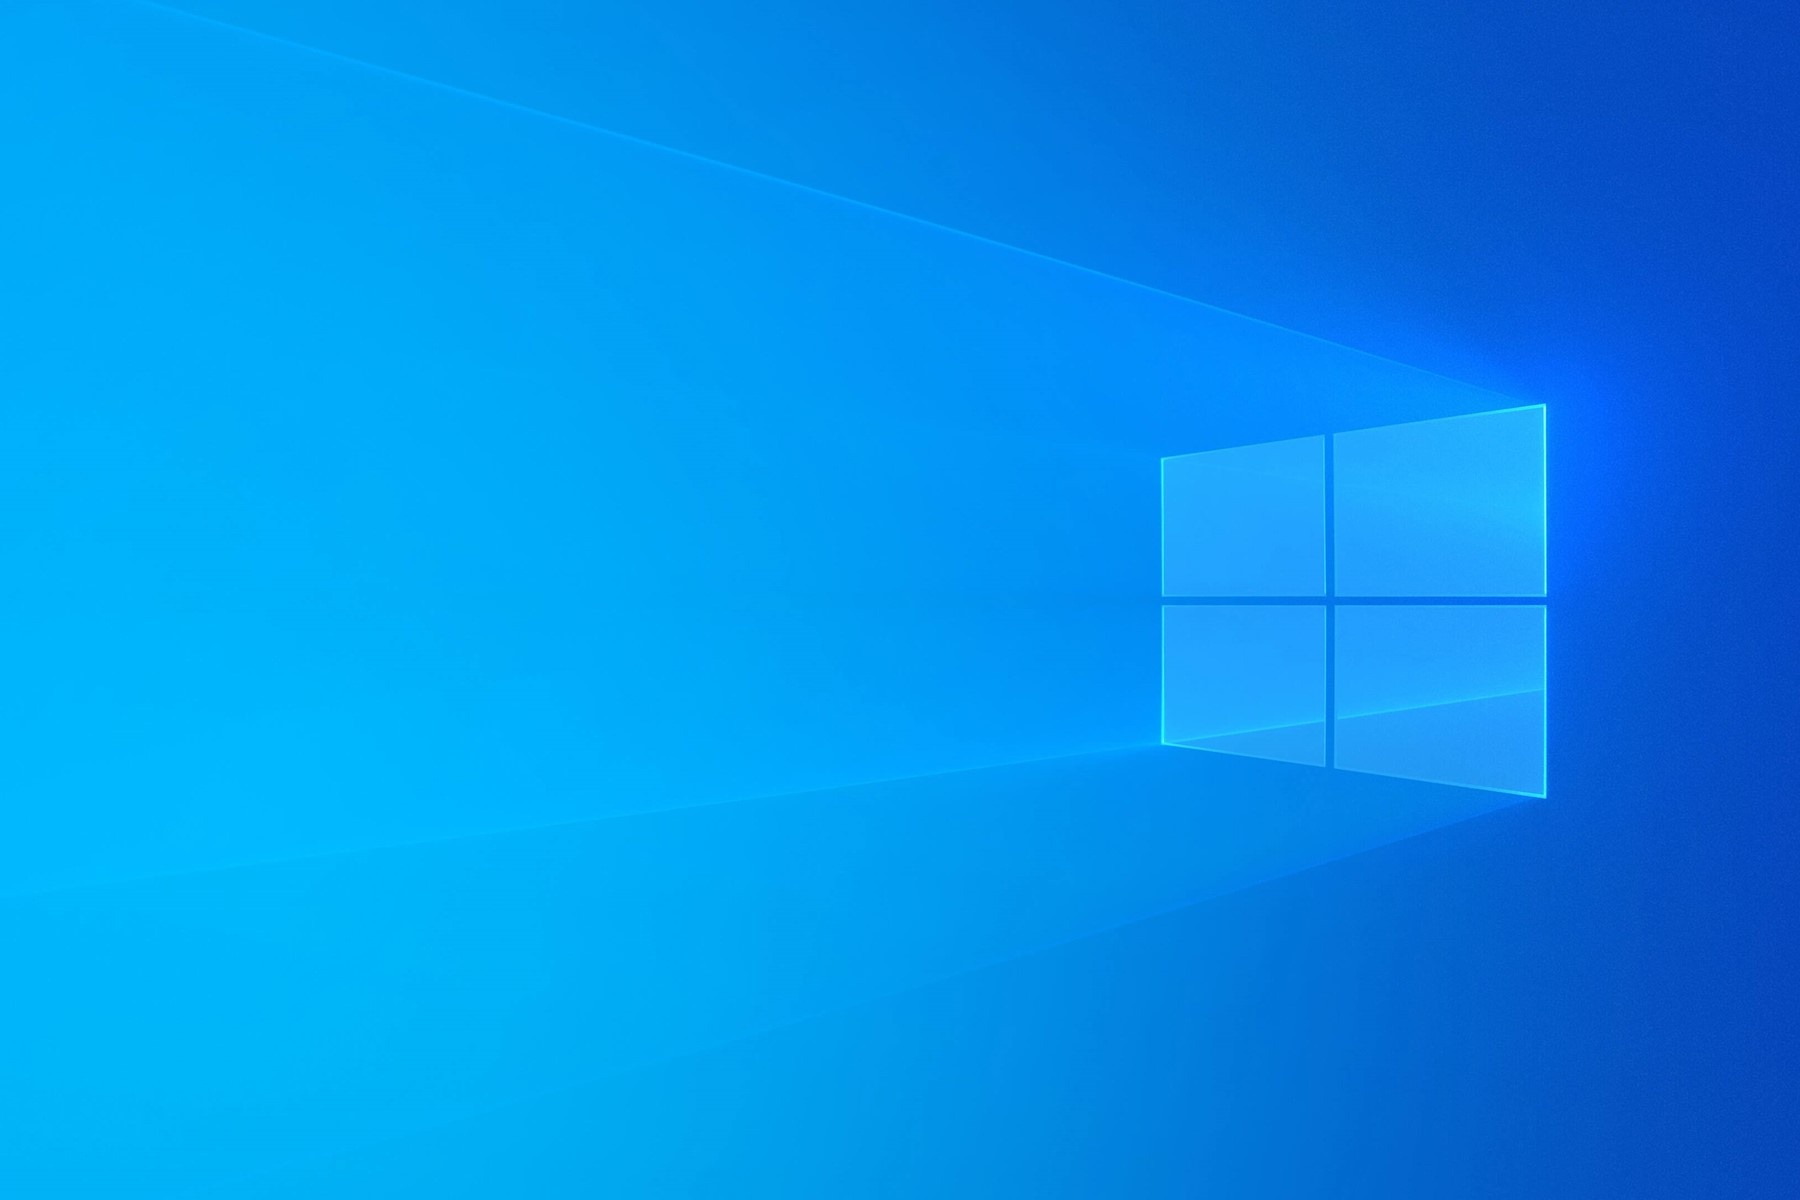 How to get Windows 10 19H1s gorgeous Light theme wallpaper now 1800x1200